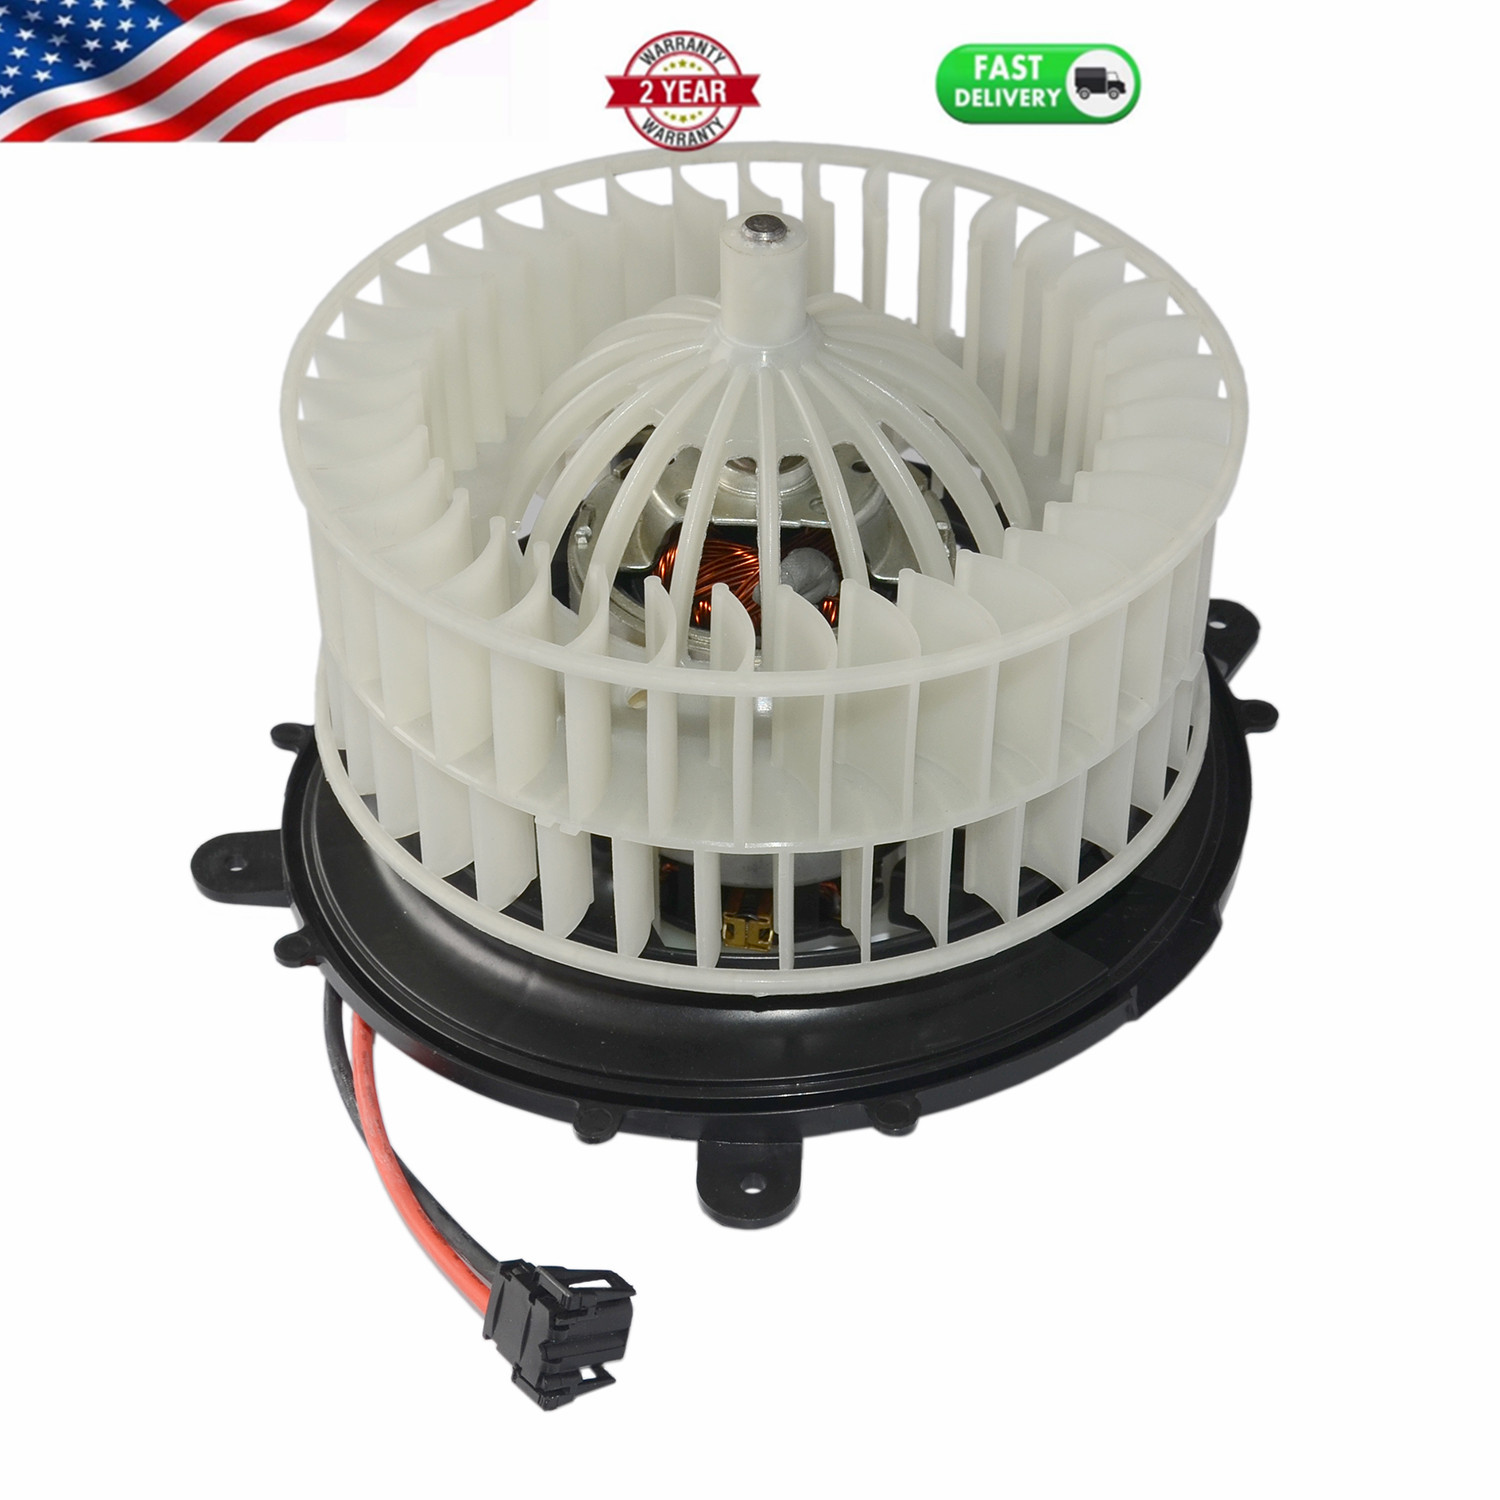 AP02 AC Blower Motor For Mercedes-Benz W220 W215 S320 S350 S400 S500 S600 S430 Brand New 2208203142, A2208203142  2209060100